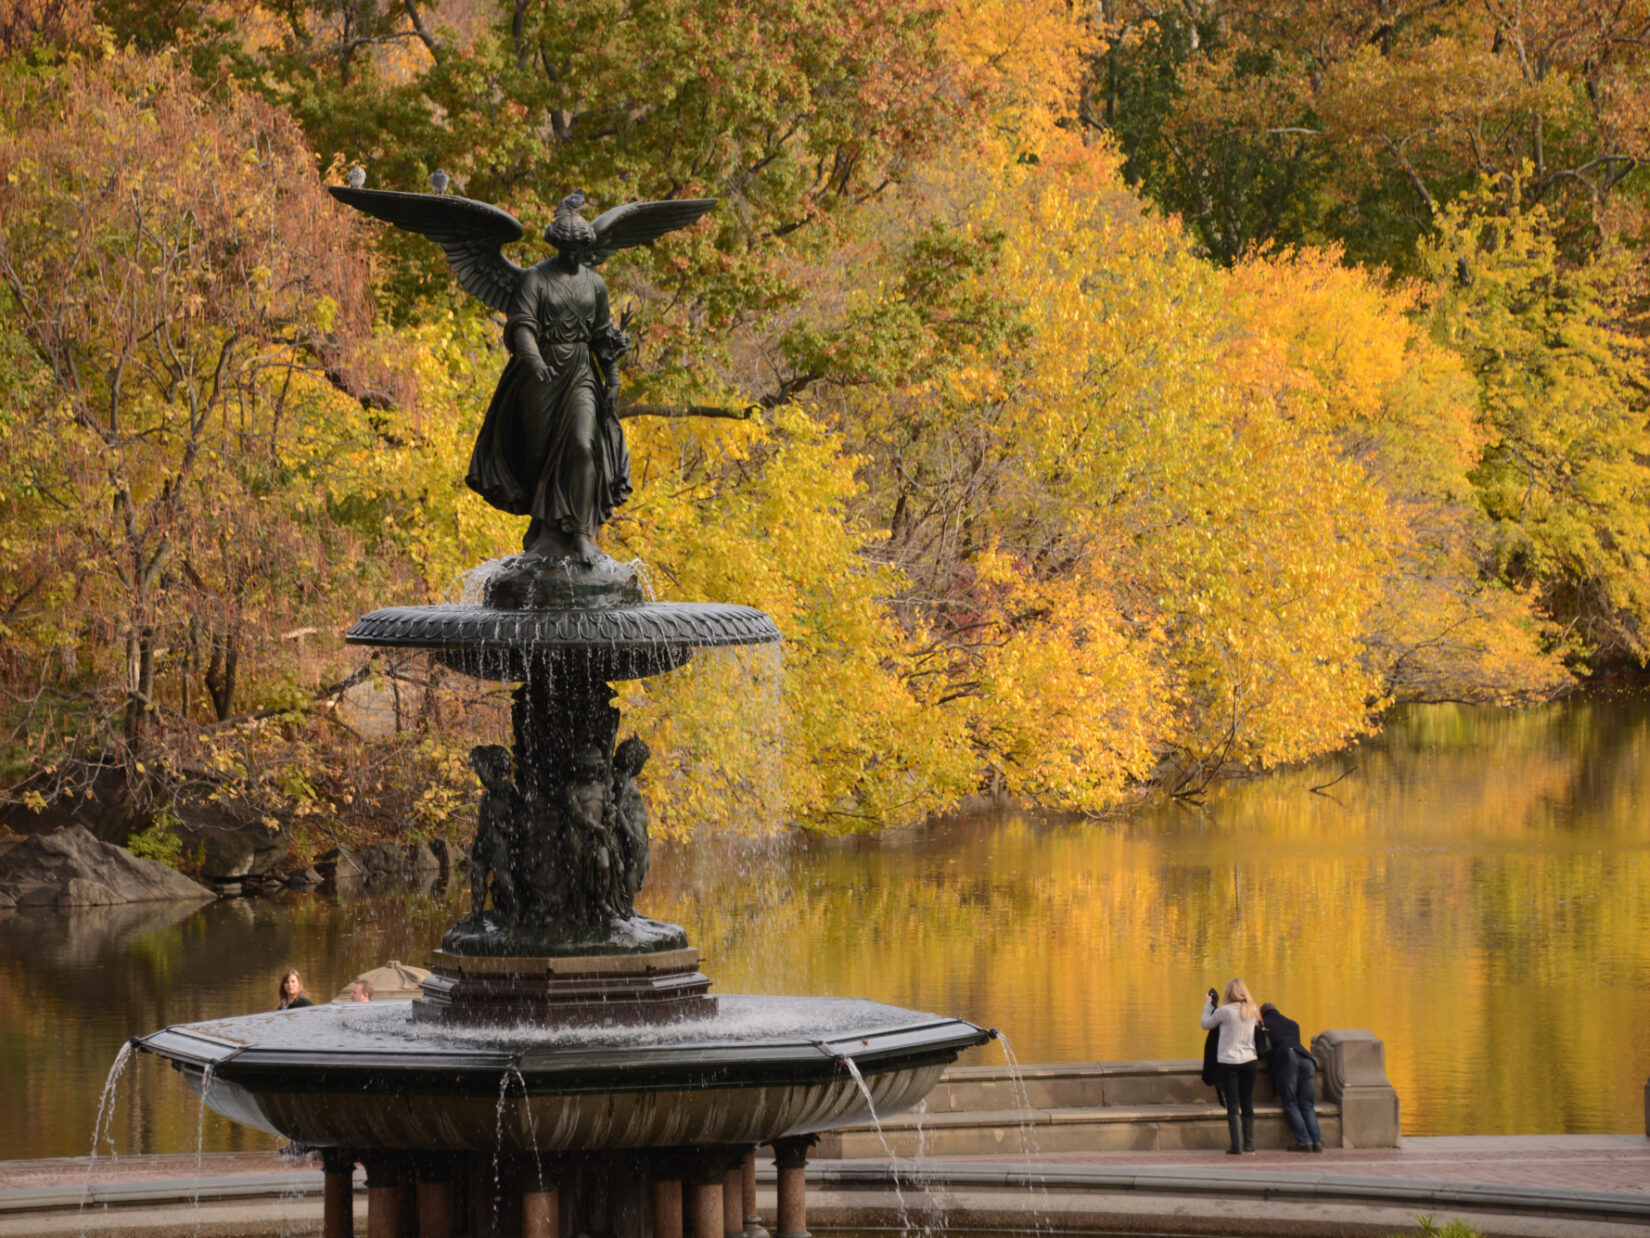 Bethesda Fountain Central Park credit the Central Park Conservancy